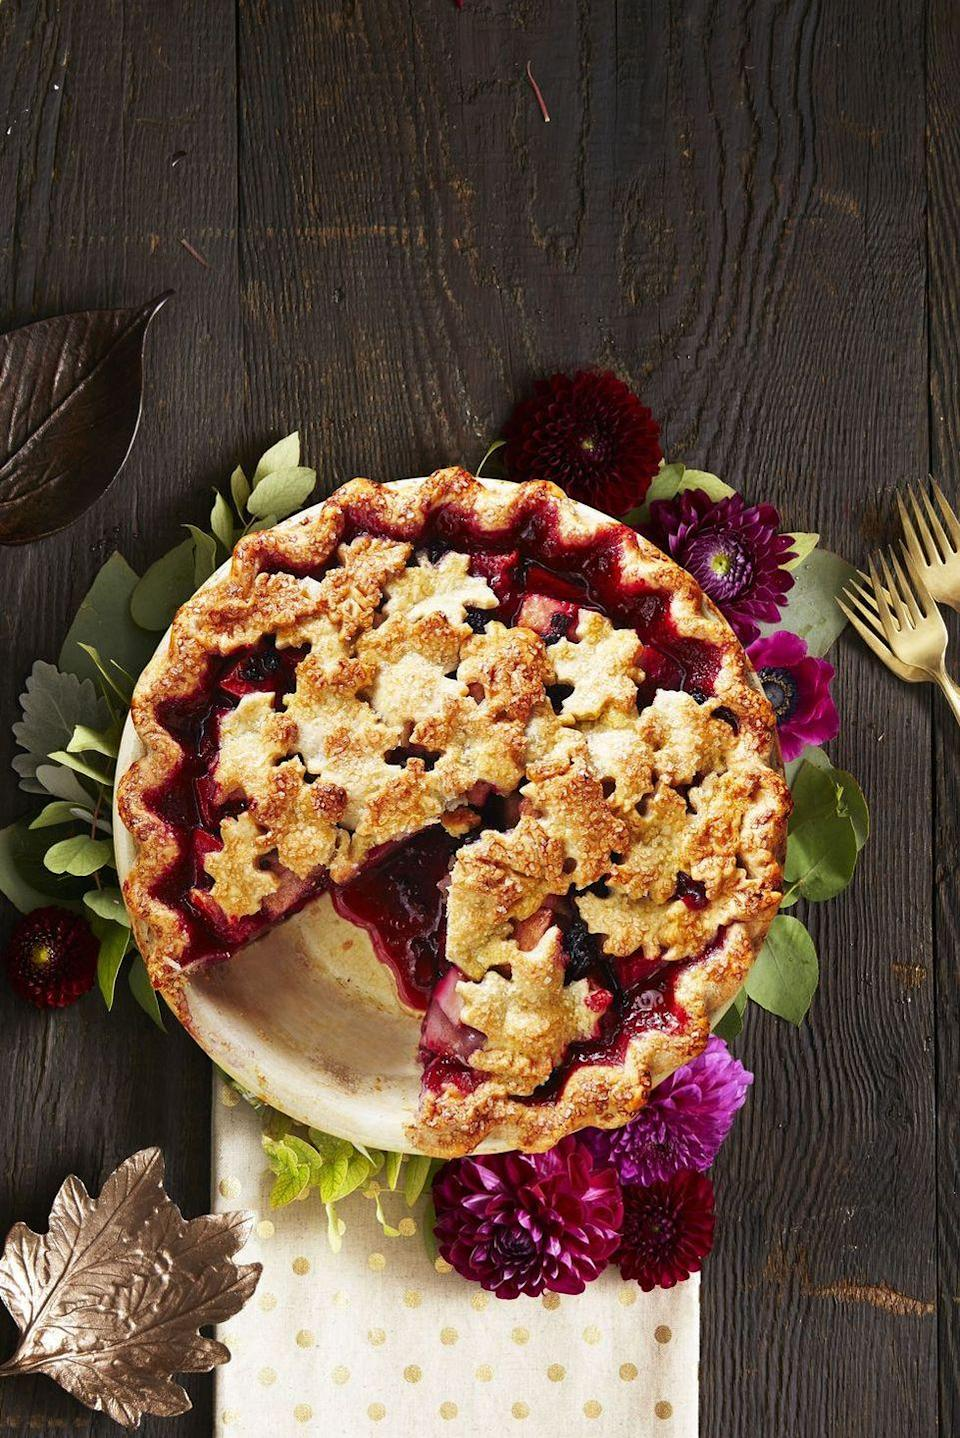 """<p>Switch it up this year and make pear pie instead of apple. Add blackberries for unexpected flavor and Insta-worthy color!</p><p><em><a href=""""https://www.goodhousekeeping.com/food-recipes/dessert/a34579/harvest-pear-blackberry-pie/"""" rel=""""nofollow noopener"""" target=""""_blank"""" data-ylk=""""slk:Get the recipe for Harvest Pear-Blackberry Pie »"""" class=""""link rapid-noclick-resp""""><em>Get the recipe for </em>Harvest Pear-Blackberry Pie »</a></em></p><p><strong>RELATED: </strong><a href=""""https://www.goodhousekeeping.com/food-recipes/g32256776/baking-recipes/"""" rel=""""nofollow noopener"""" target=""""_blank"""" data-ylk=""""slk:40 Easy Baking Recipes For All Your Sweet Treat Cravings"""" class=""""link rapid-noclick-resp"""">40 Easy Baking Recipes For All Your Sweet Treat Cravings</a><br></p>"""